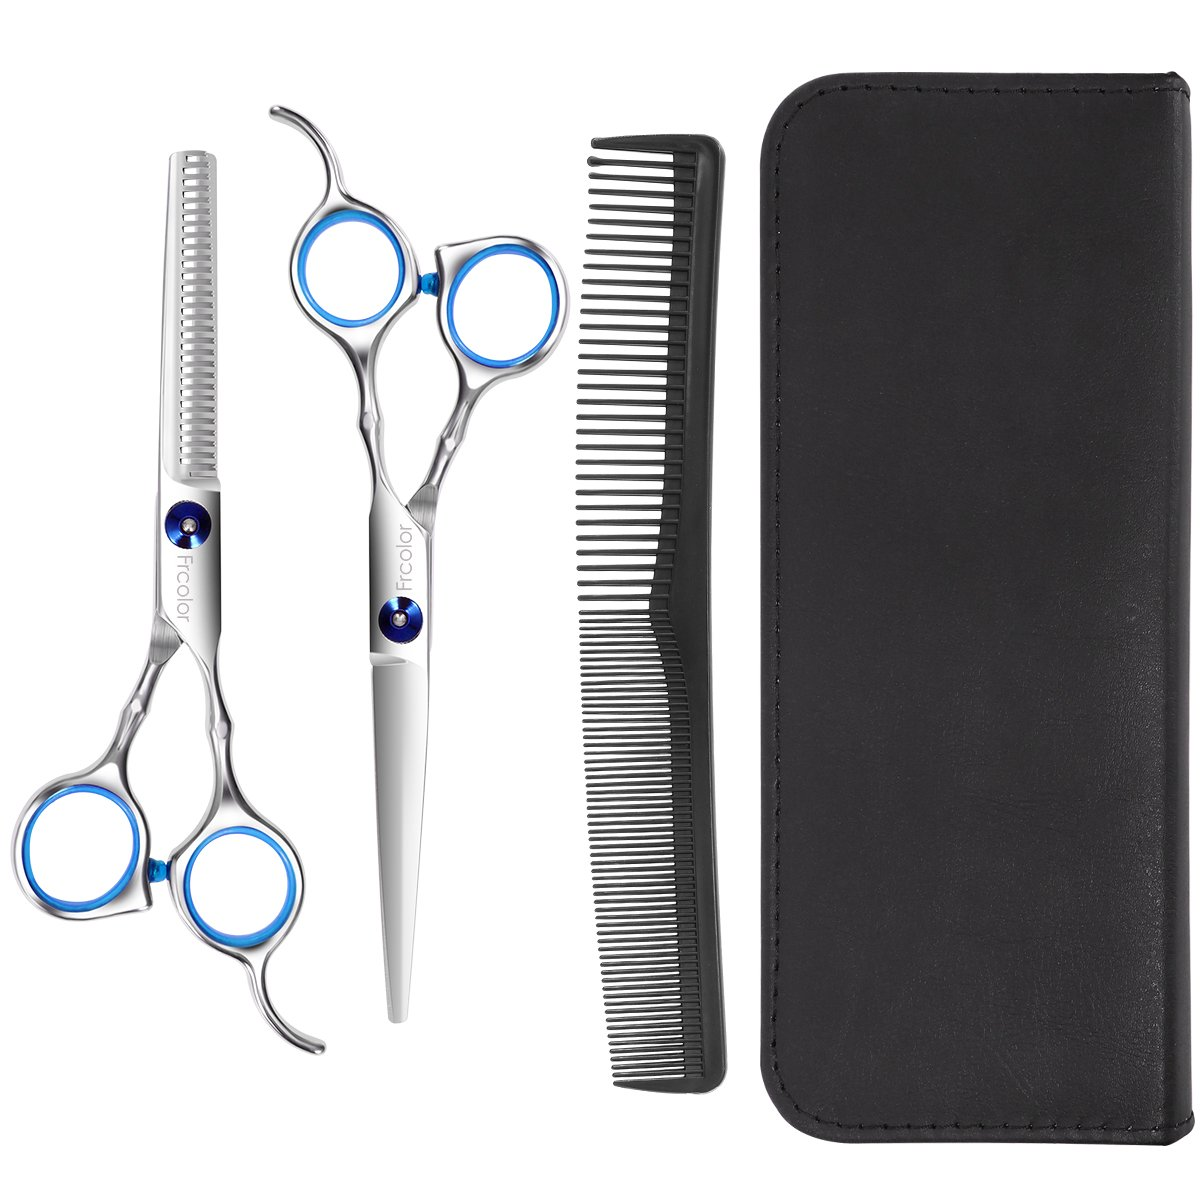 Frcolor Hair Cutting Barber Scissors/Shears, Barber/Salon/Home Thinning Shears Kit Hair Scissors Set with Comb Case Hairdressing Cape